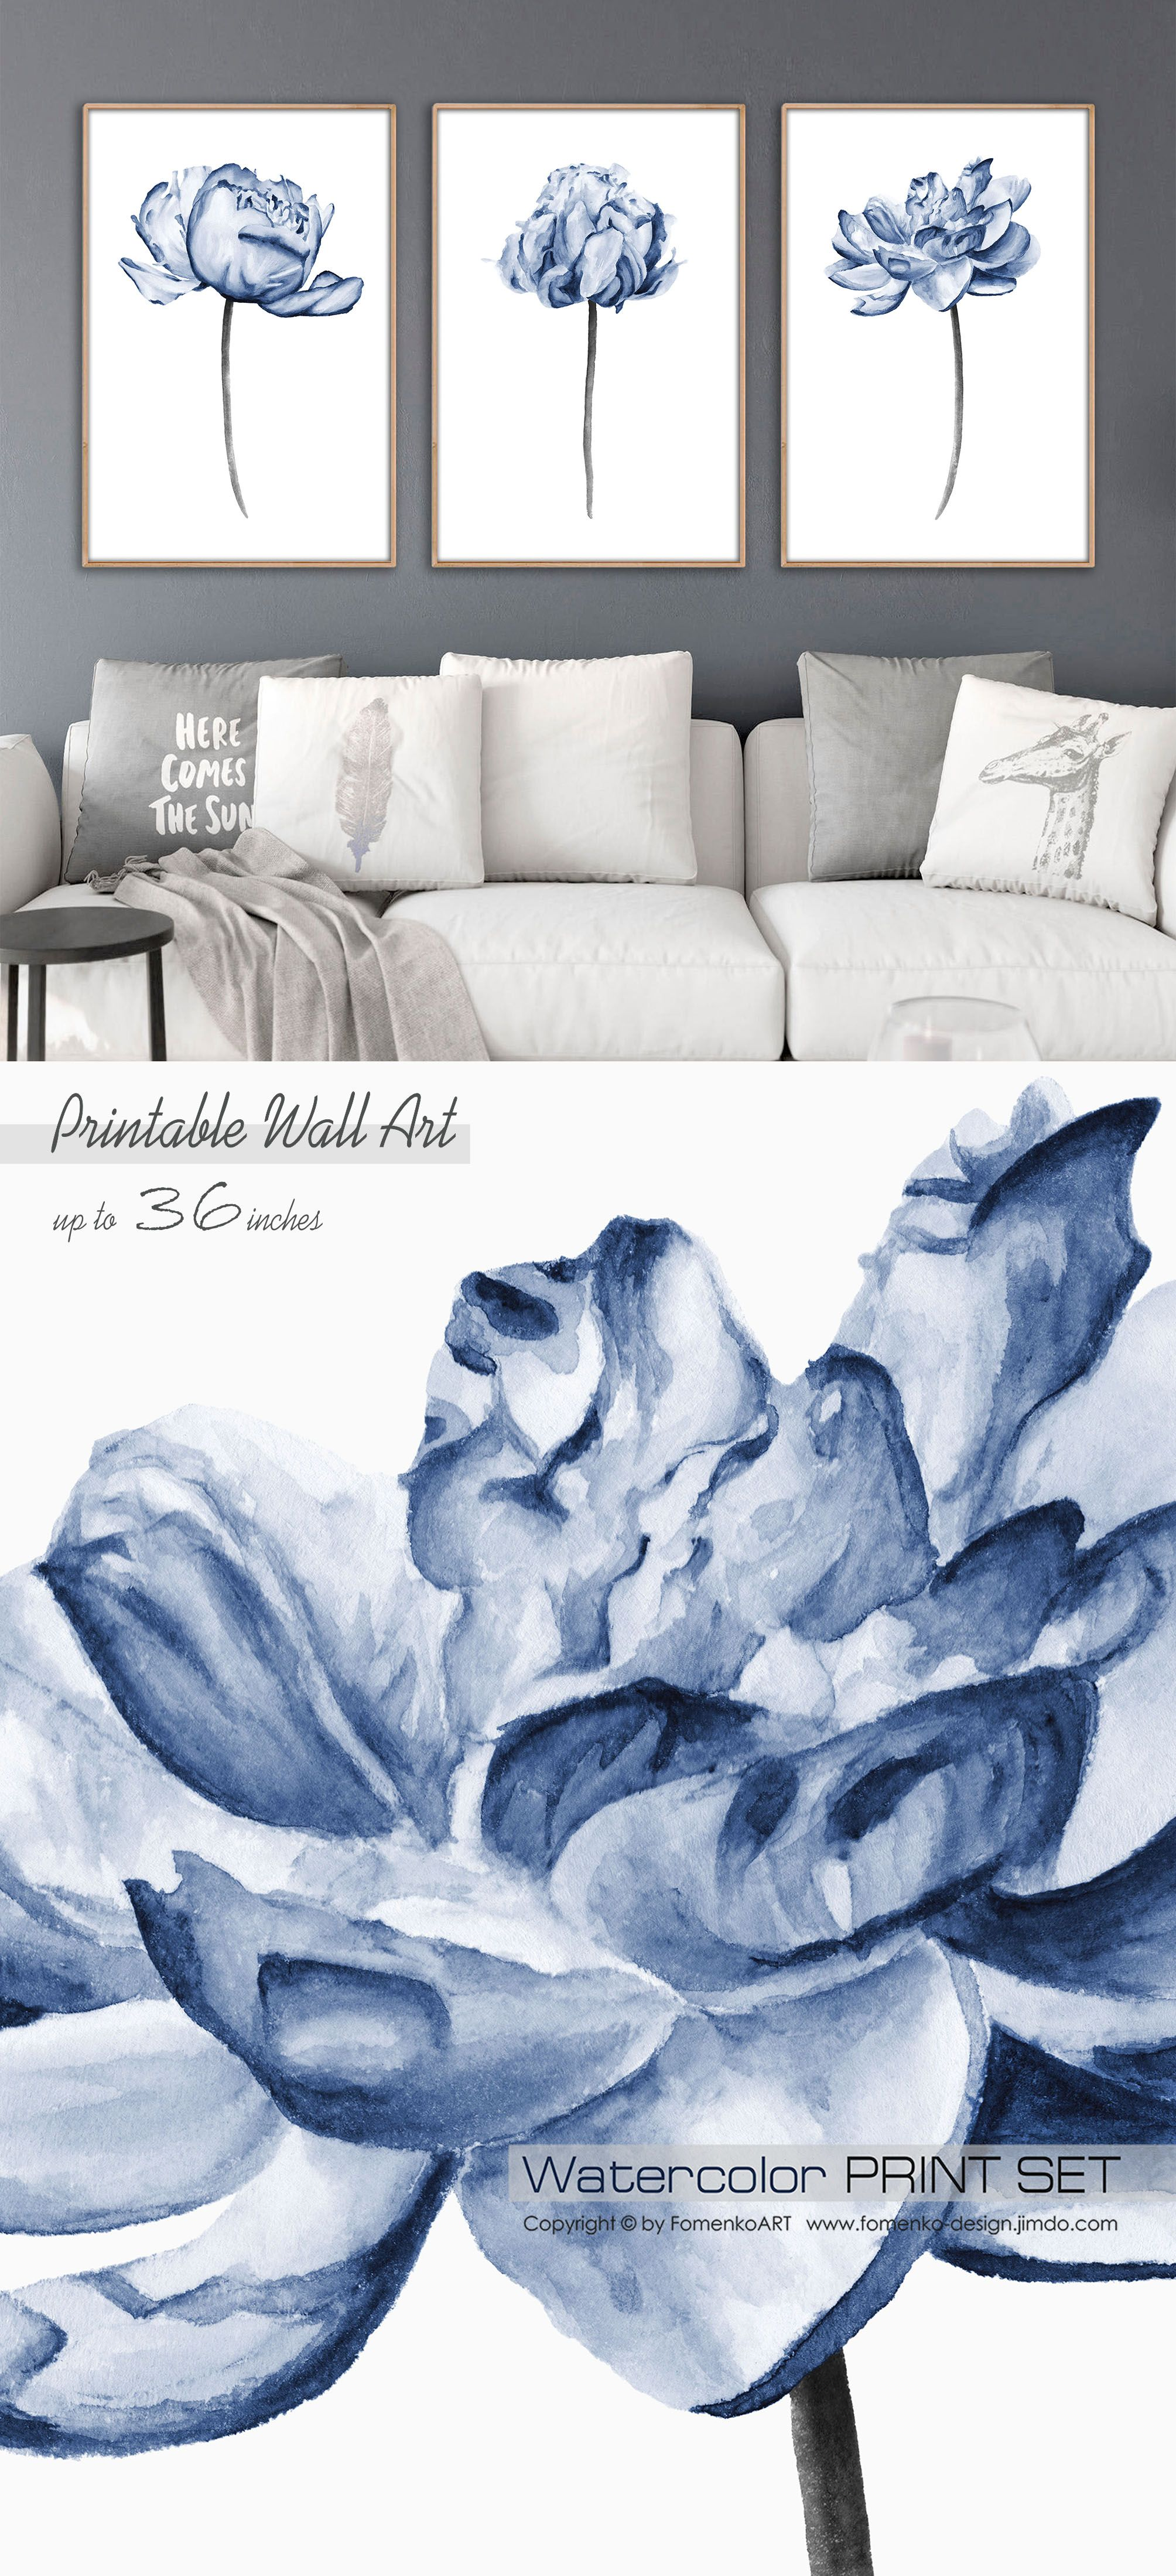 Downloadable Prints Wall Art Kitchen Wall Decor Bedroom Wall Decor Living Room Wall Decor Watercolor Peony Print Navy Blue Wall Art Set Of 3 In 2020 Navy Blue Wall Art Blue